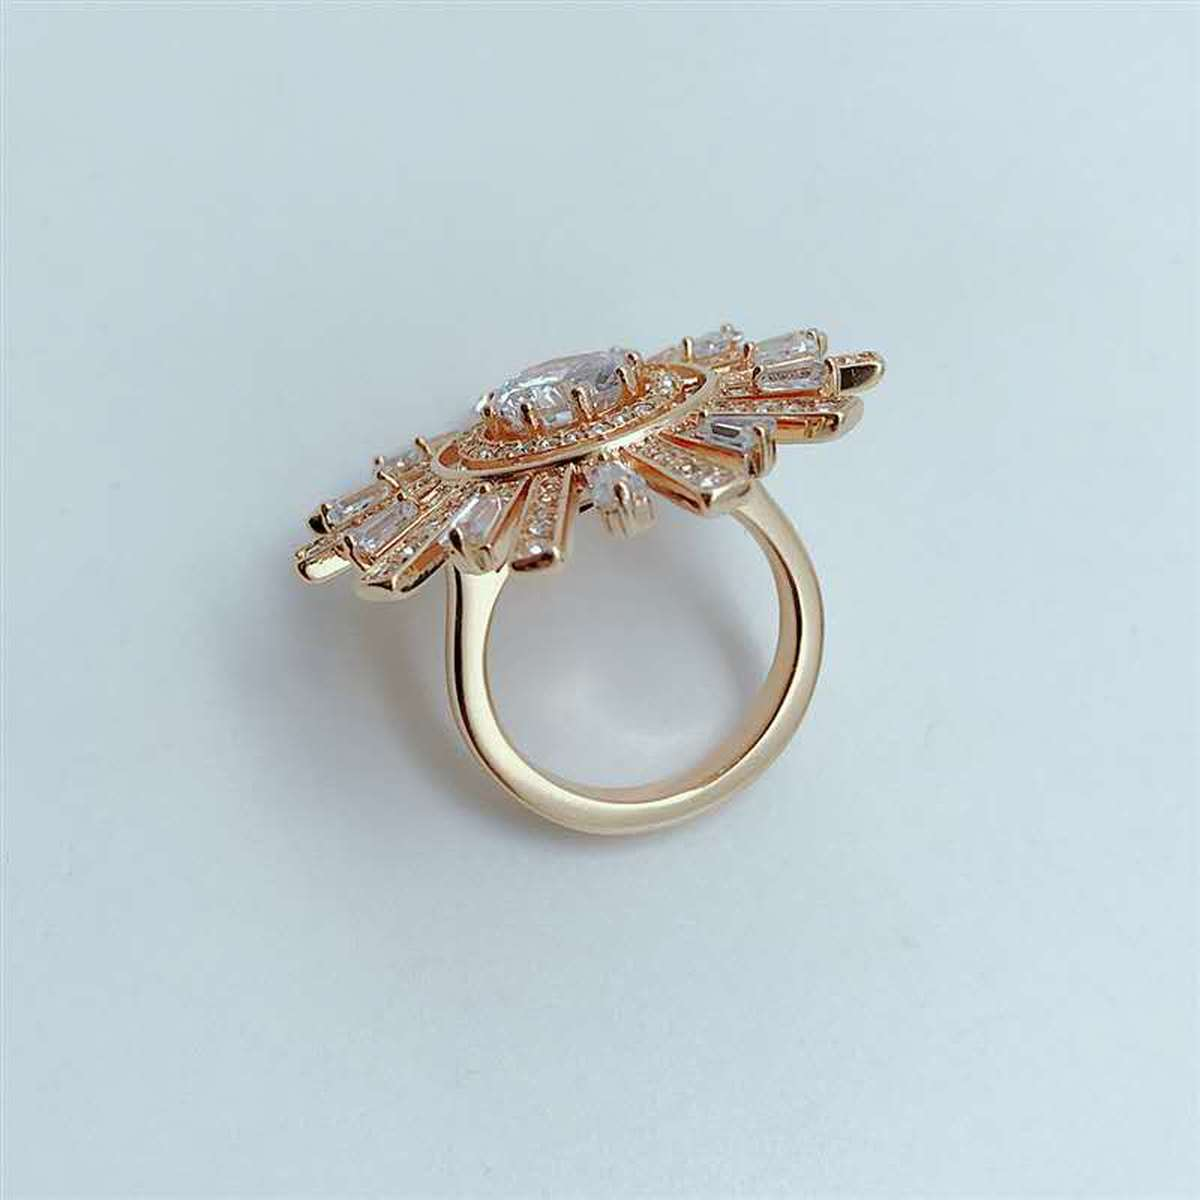 QSJIE High quality SWA. Fashionable, fresh and shiny crystal, gifts,solar Cocktail Ring Glamorous fashion jewelry